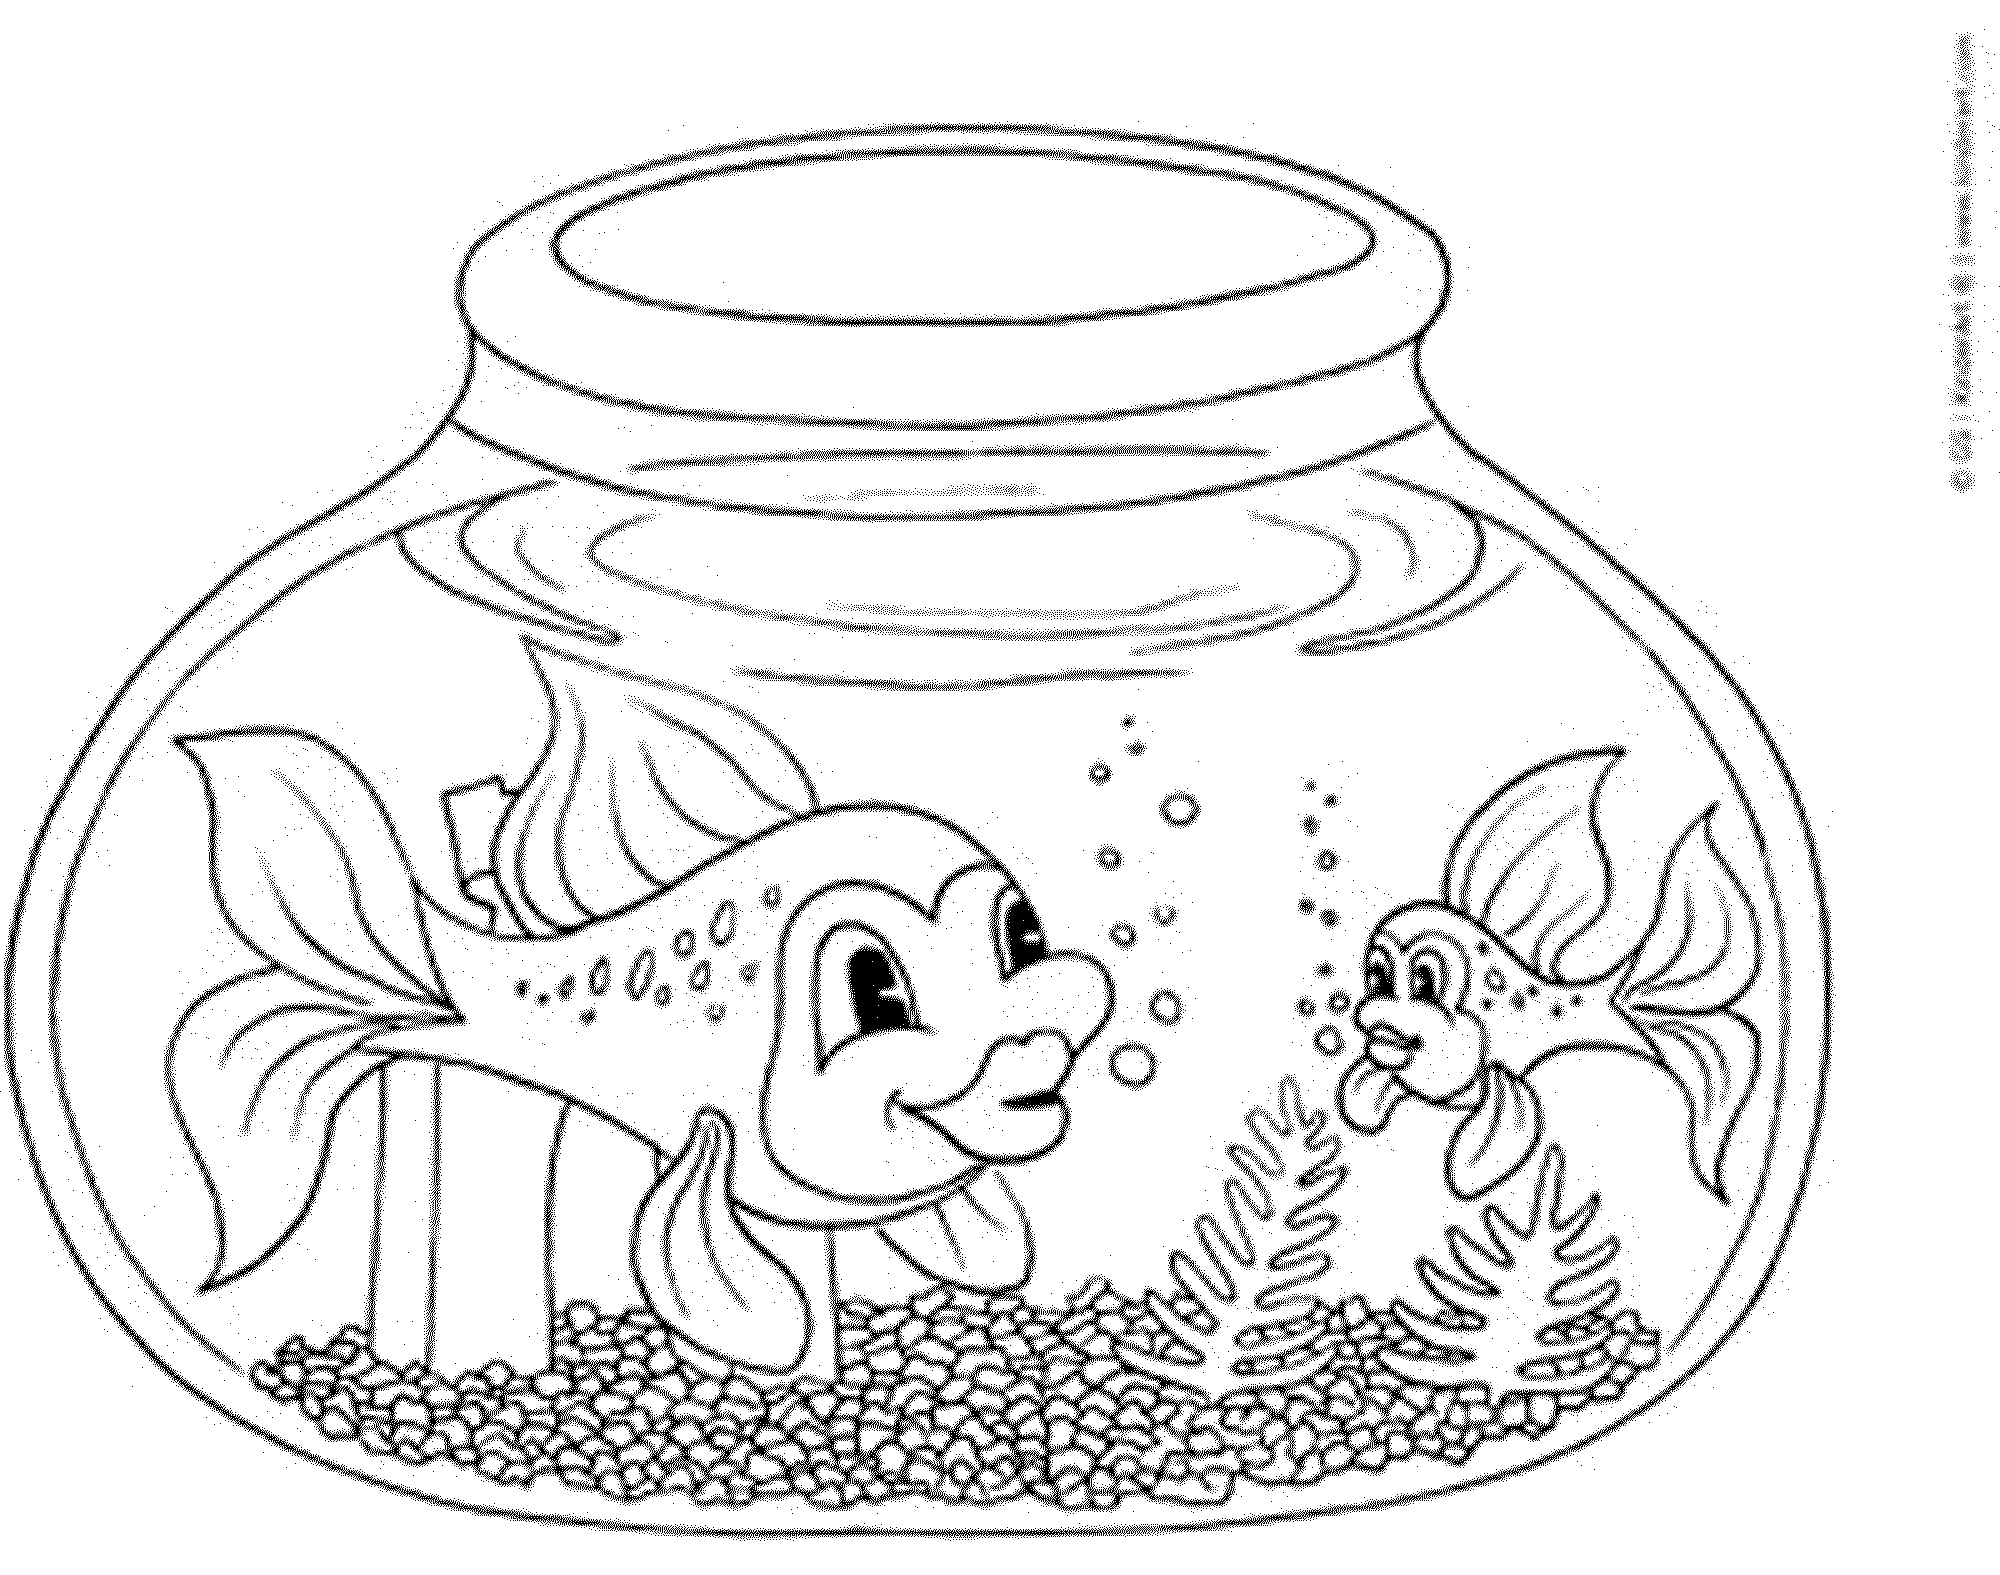 coloring picture fish free printable fish coloring pages for kids cool2bkids picture fish coloring